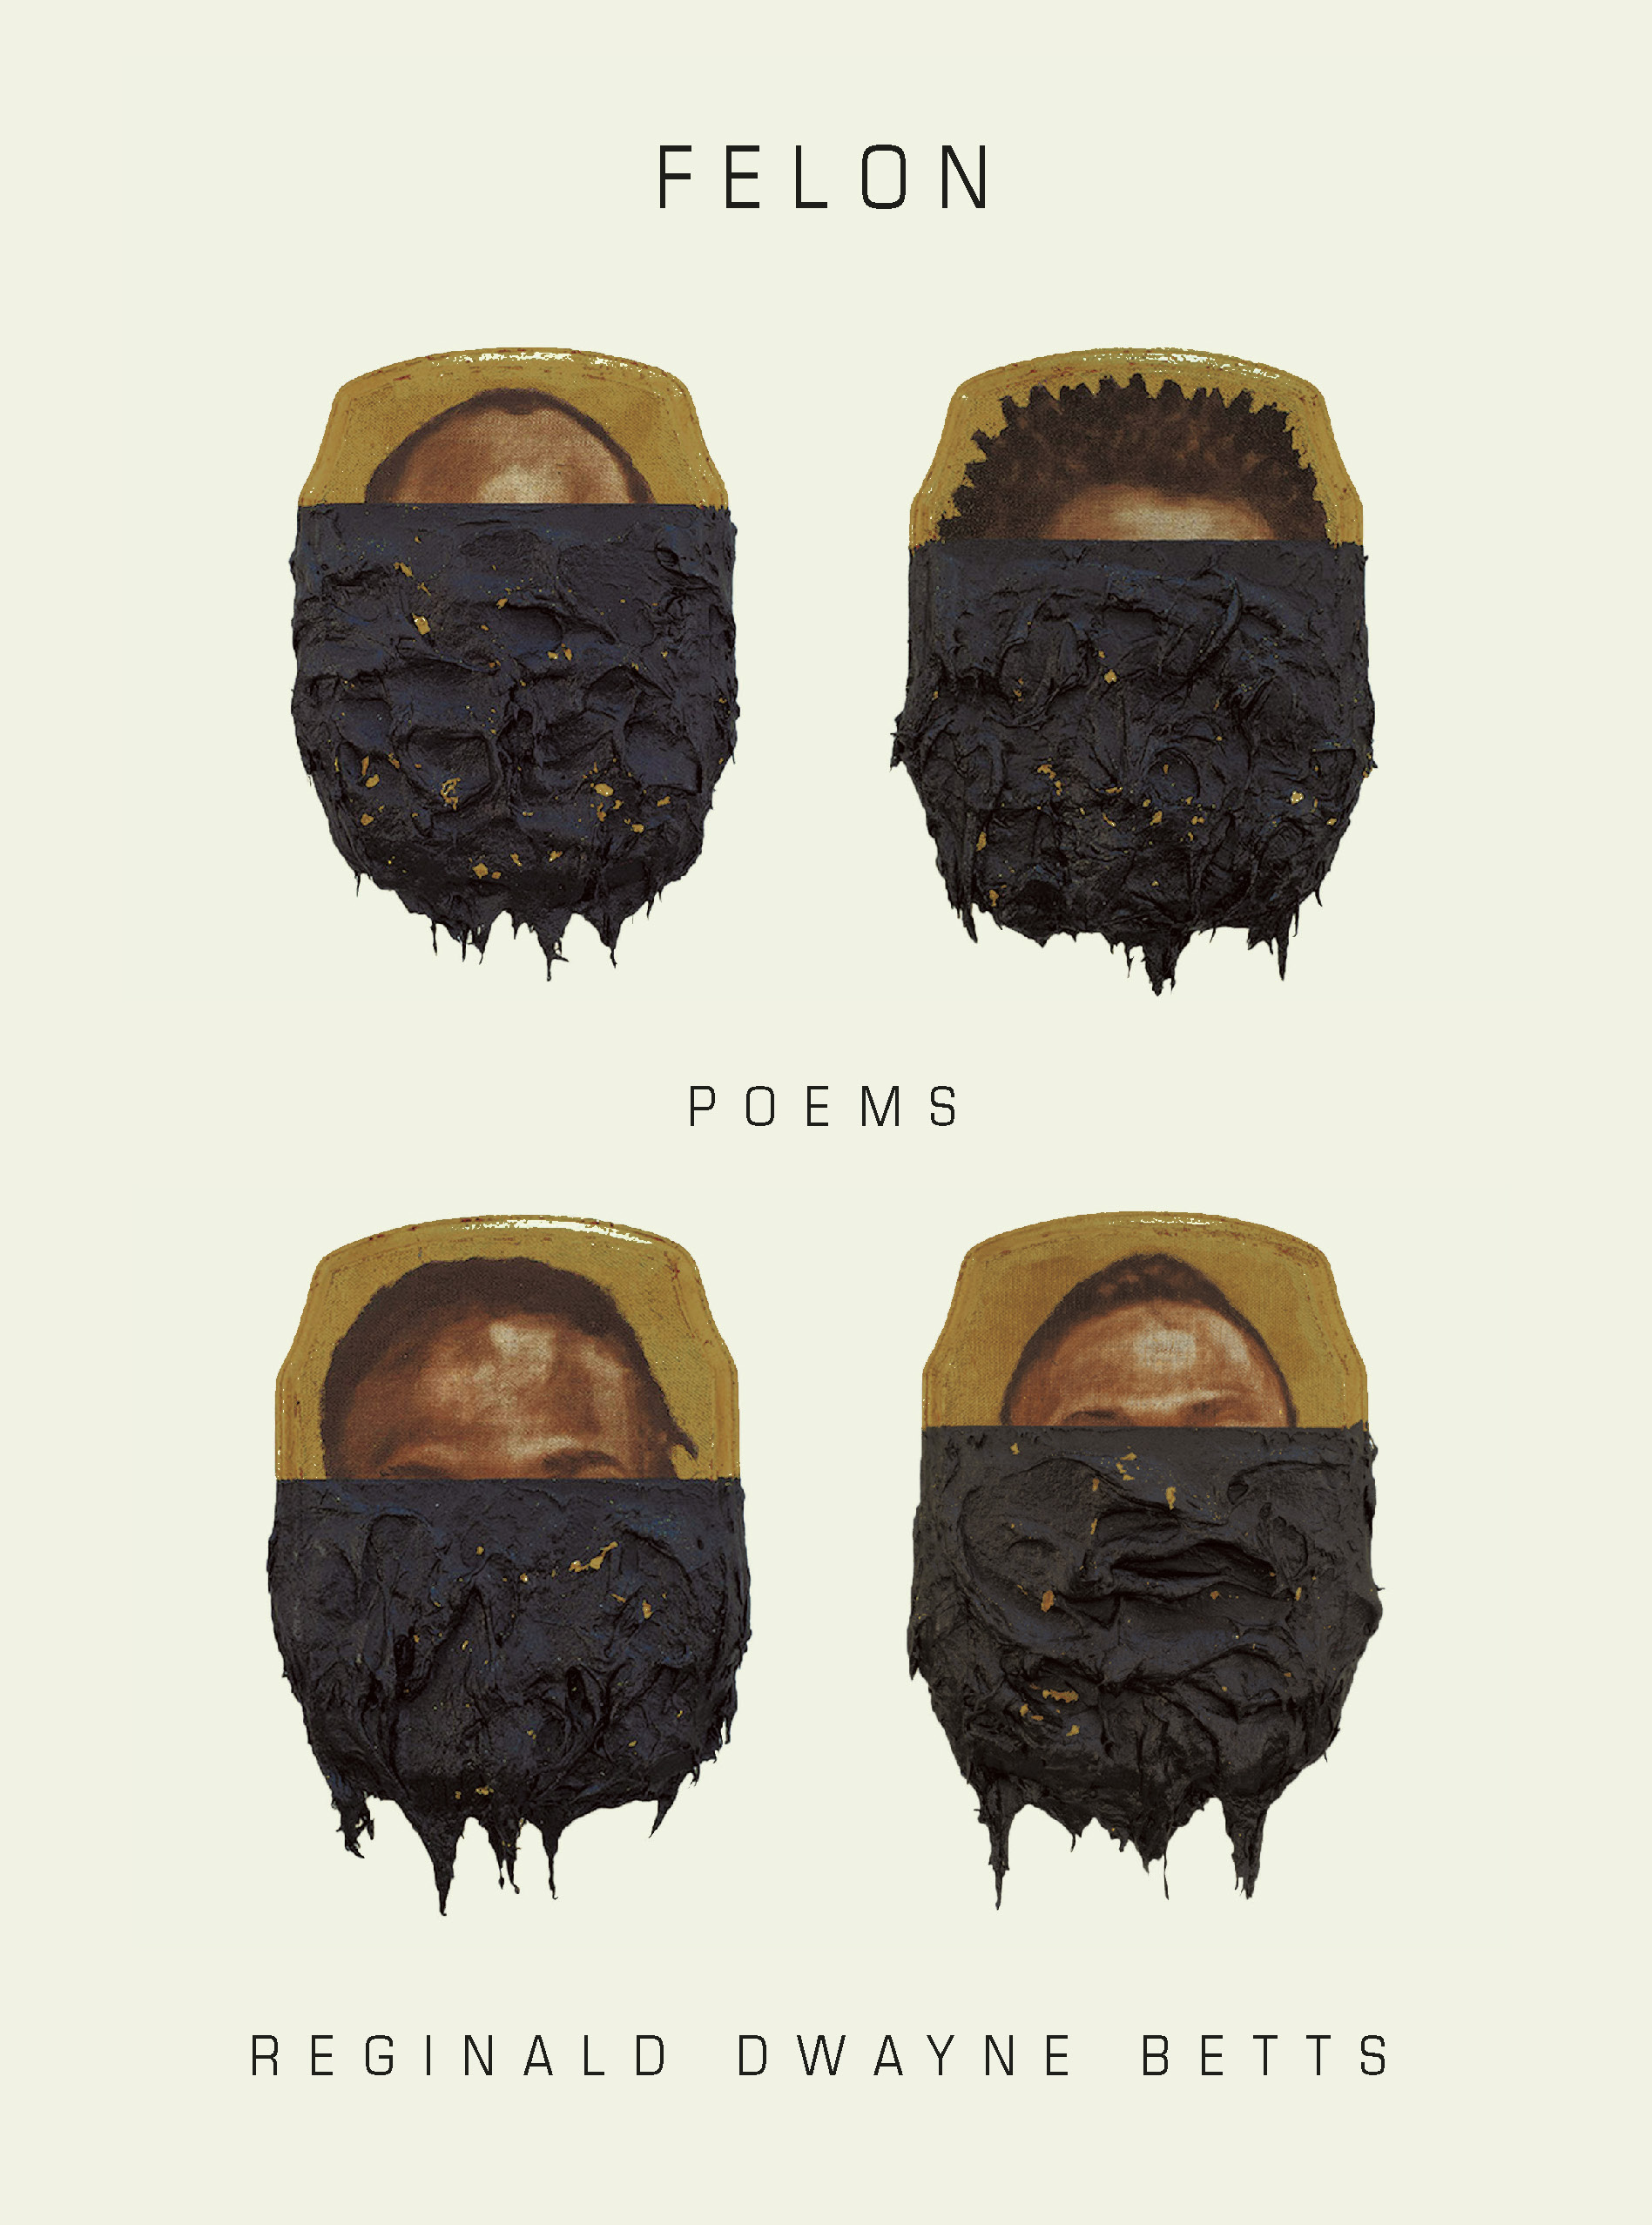 Reginald Dwayne Betts Felon Poems.jpg